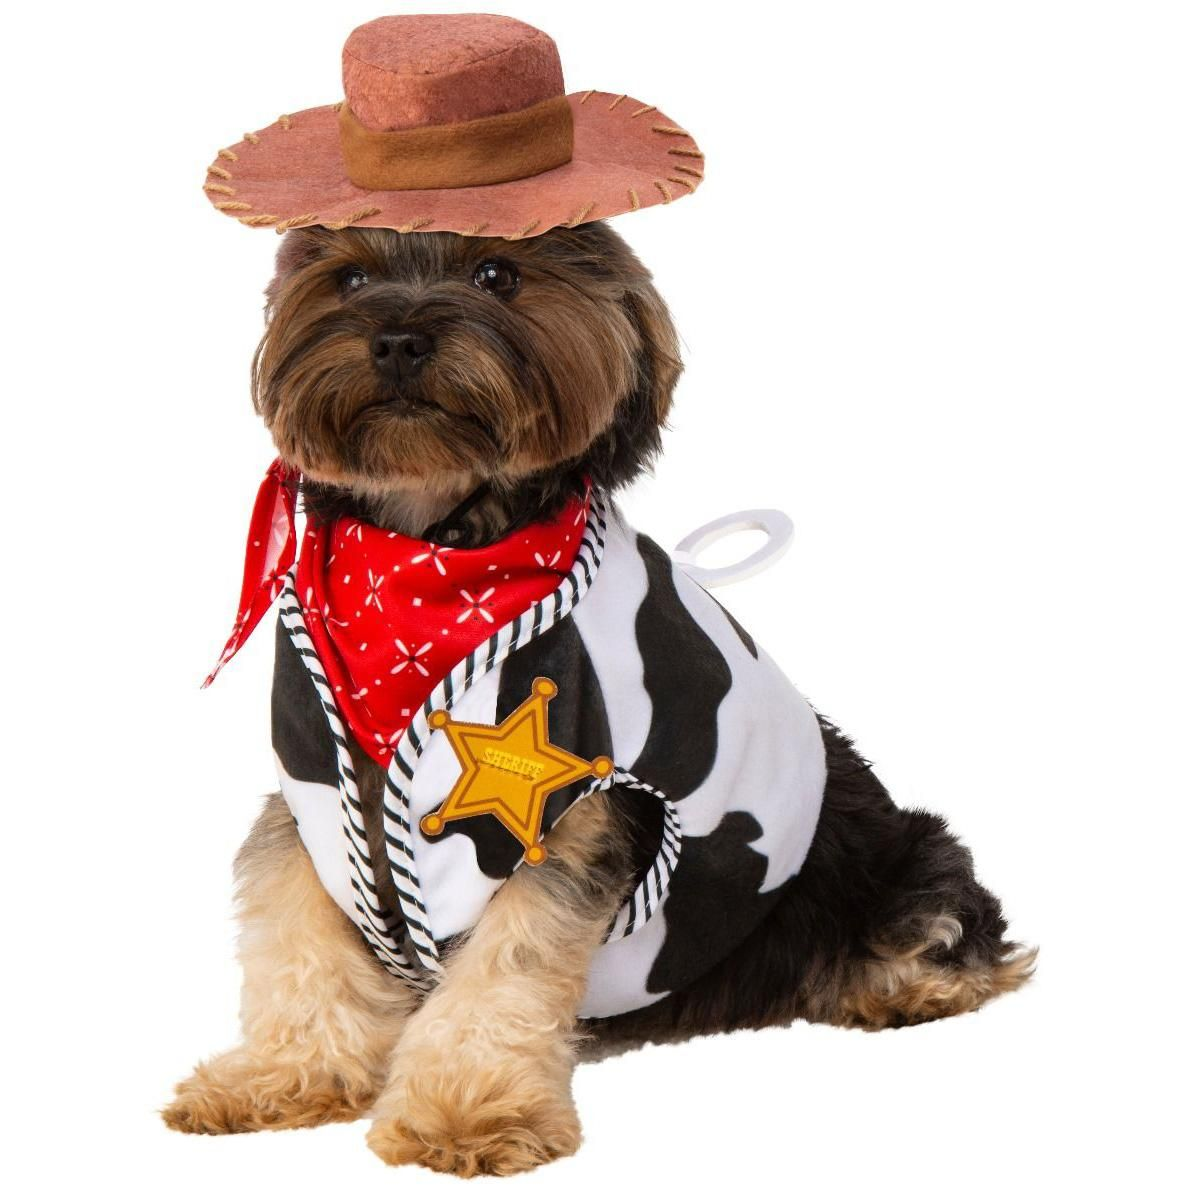 Toy Story Woody Dog Costume Accessories By Rubies Dog Halloween